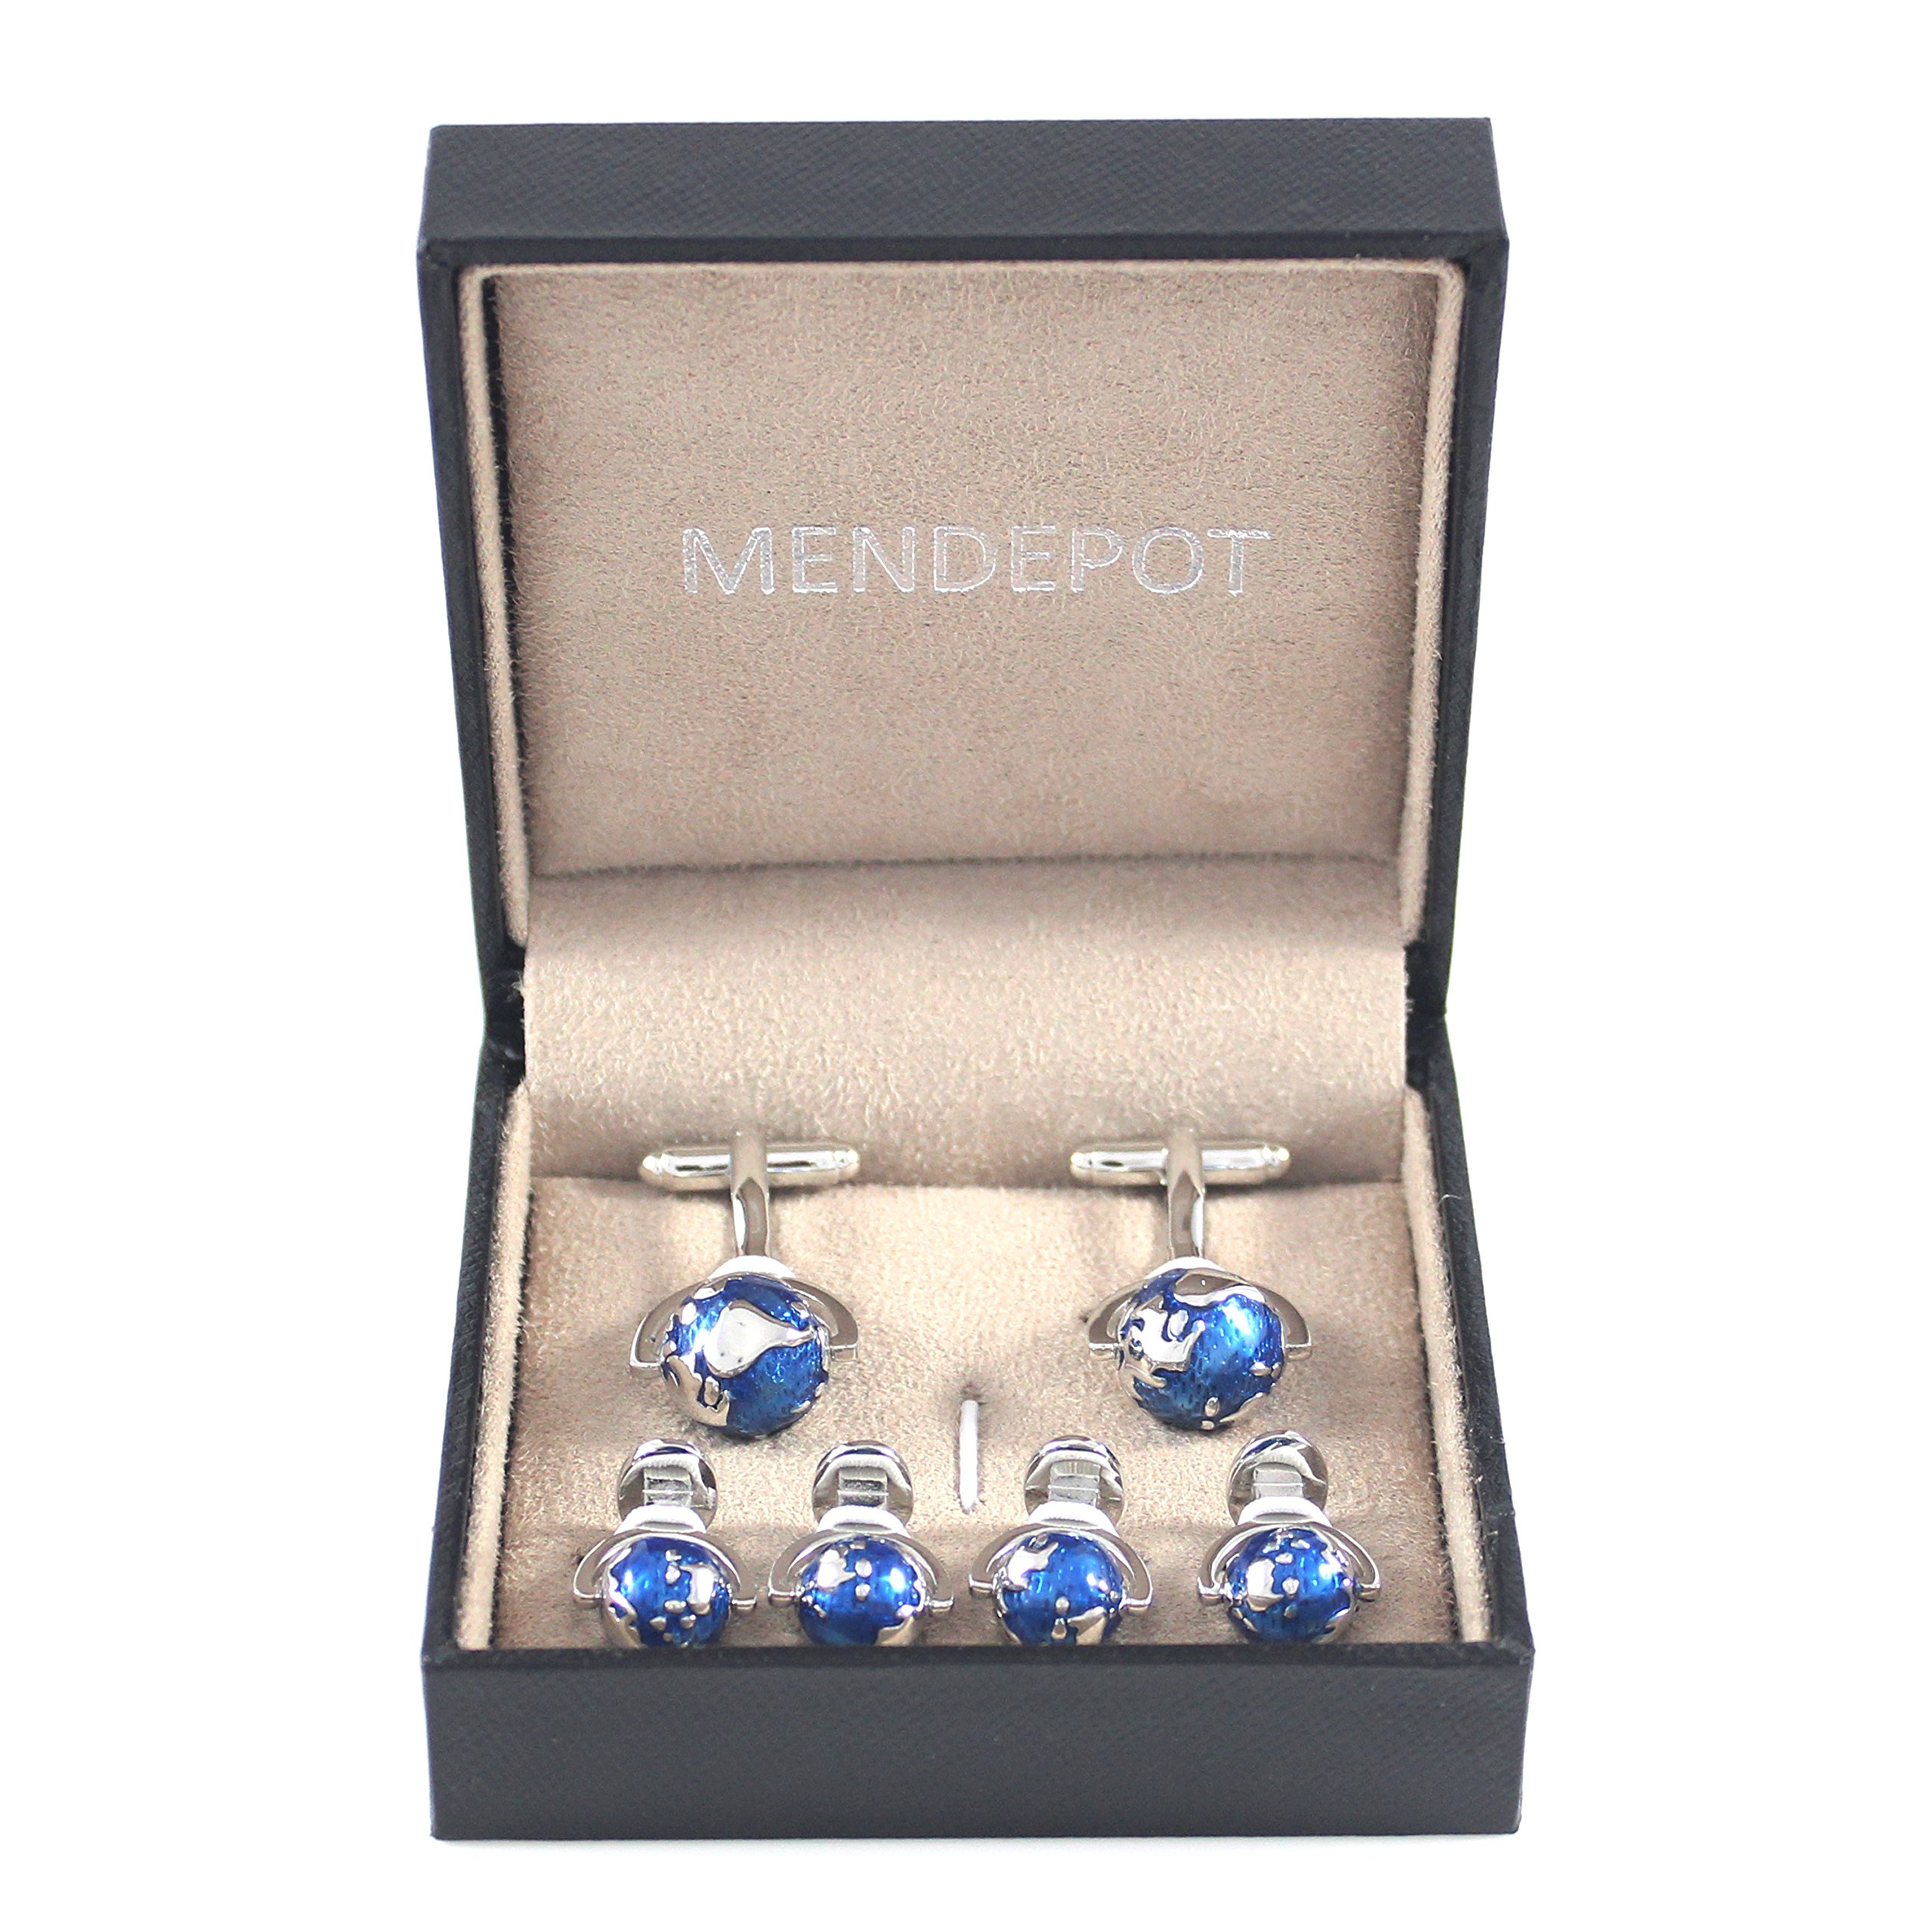 MENDEPOT Classic Rhodium Plated Blue And Silver Globe Cuff Link And Shirt Studs Formal Wear Set With Box Earth Planet Suit Set by MENDEPOT (Image #4)